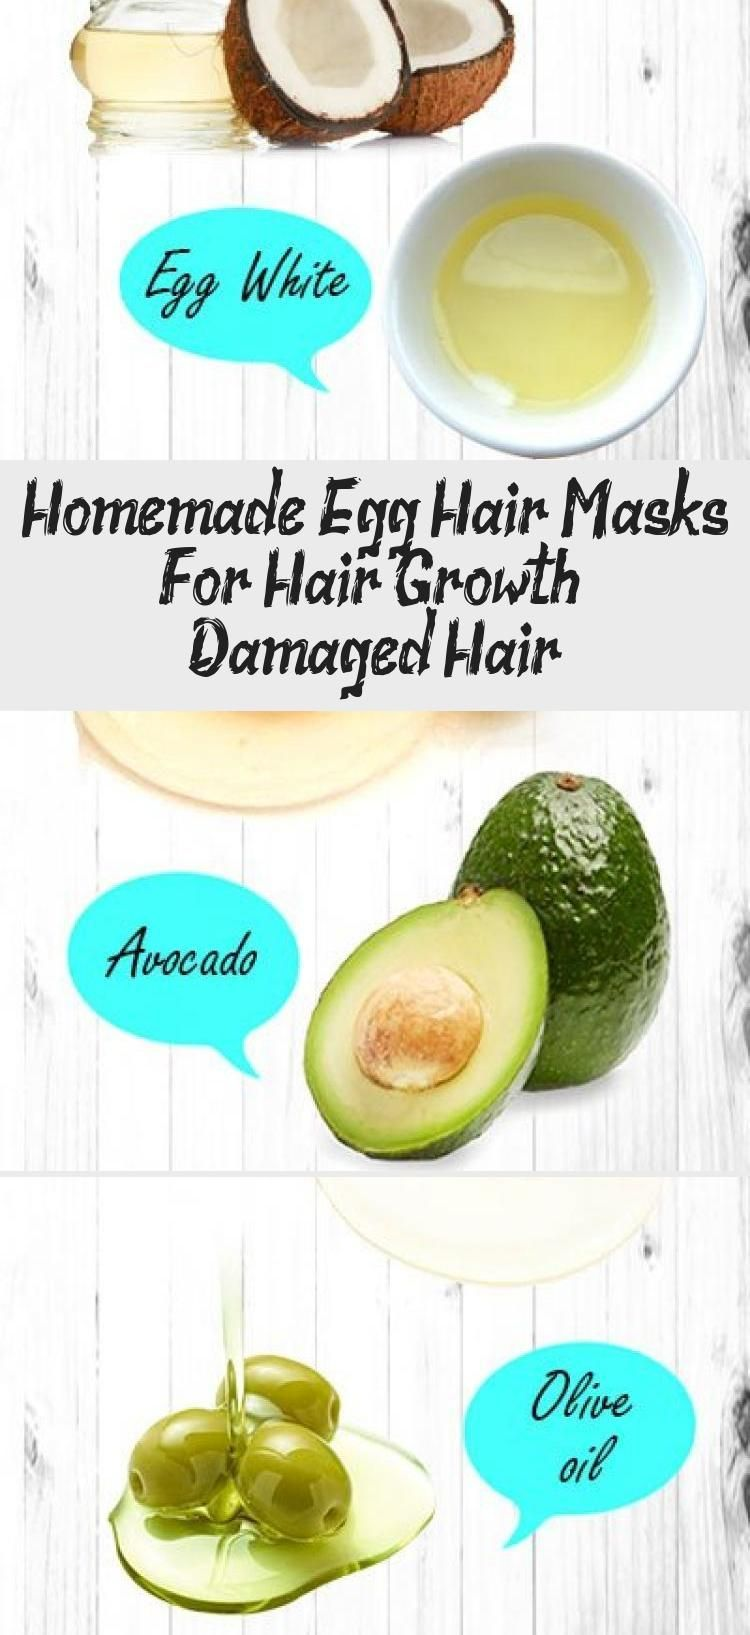 Homemade #EggHairMasks for Hair Growth & Damaged Hair! #hairgrowthAfricanAmerican #hairgrowthDIY #Extremehairgrowth #fasterhairgrowth